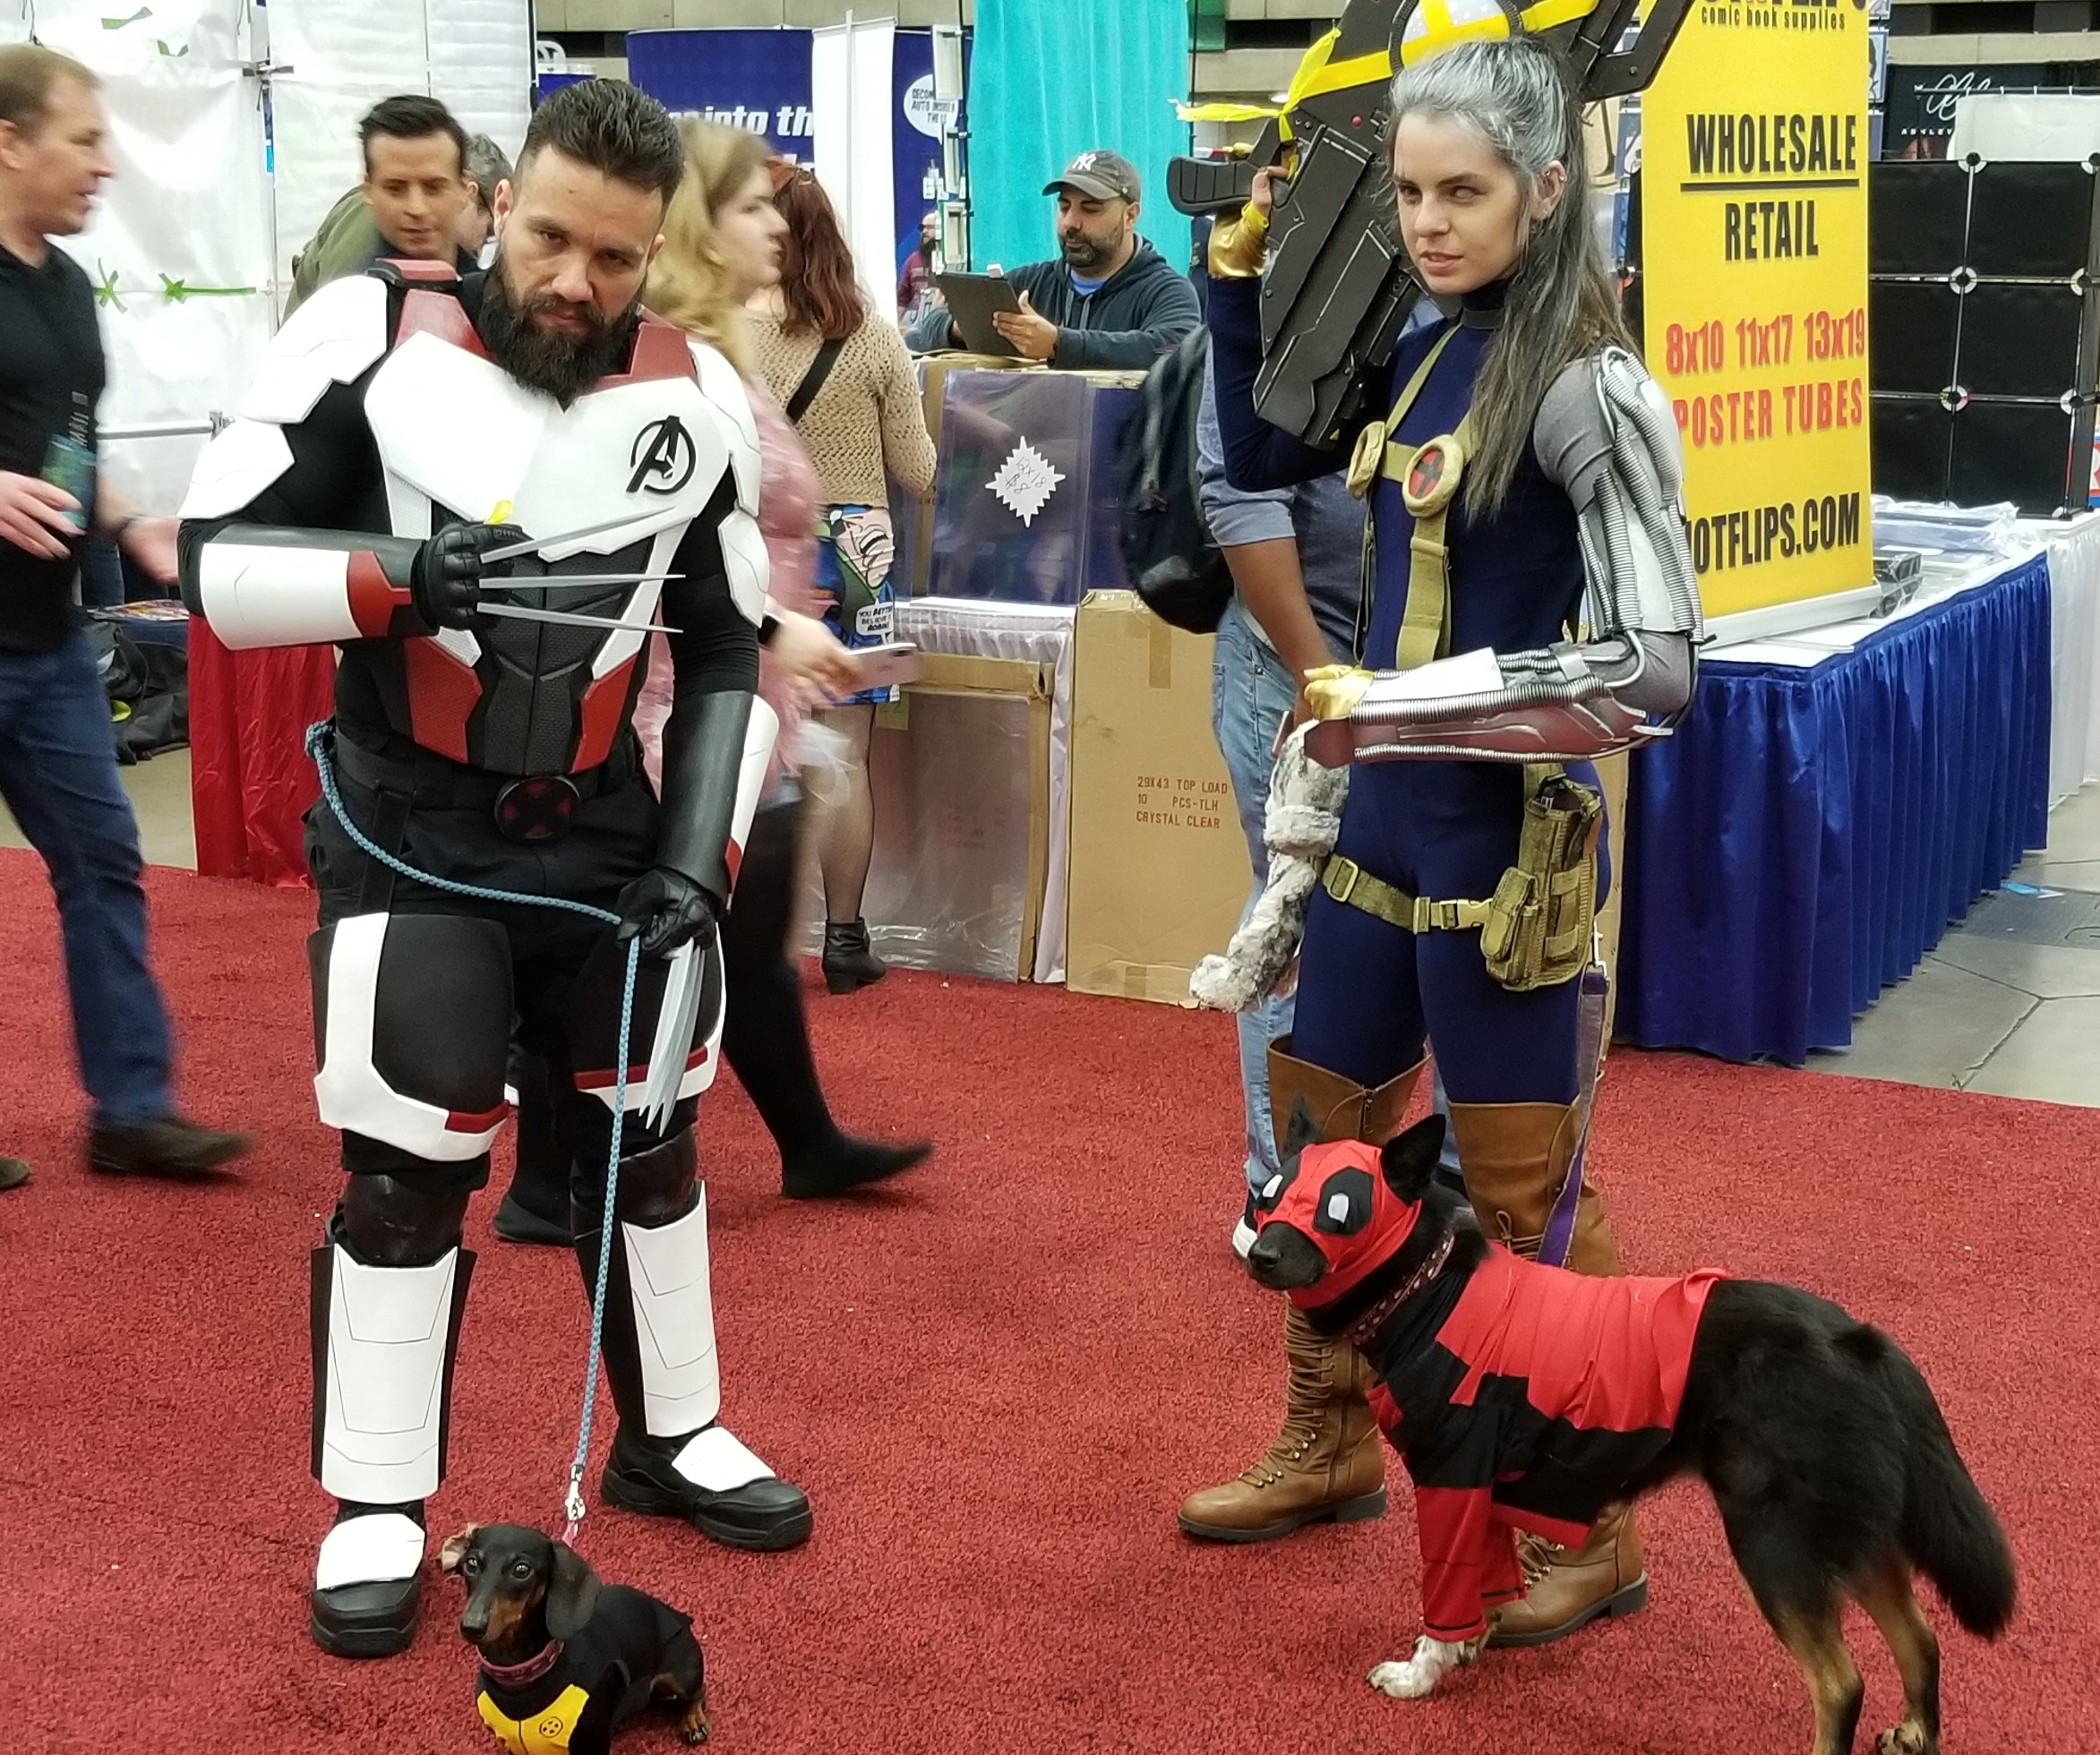 5. Cable, Wolverine, and awww! - Yes, those are cosplaying dogs. Deadpool doggie and Negasausage. Just, so cute. Squee!